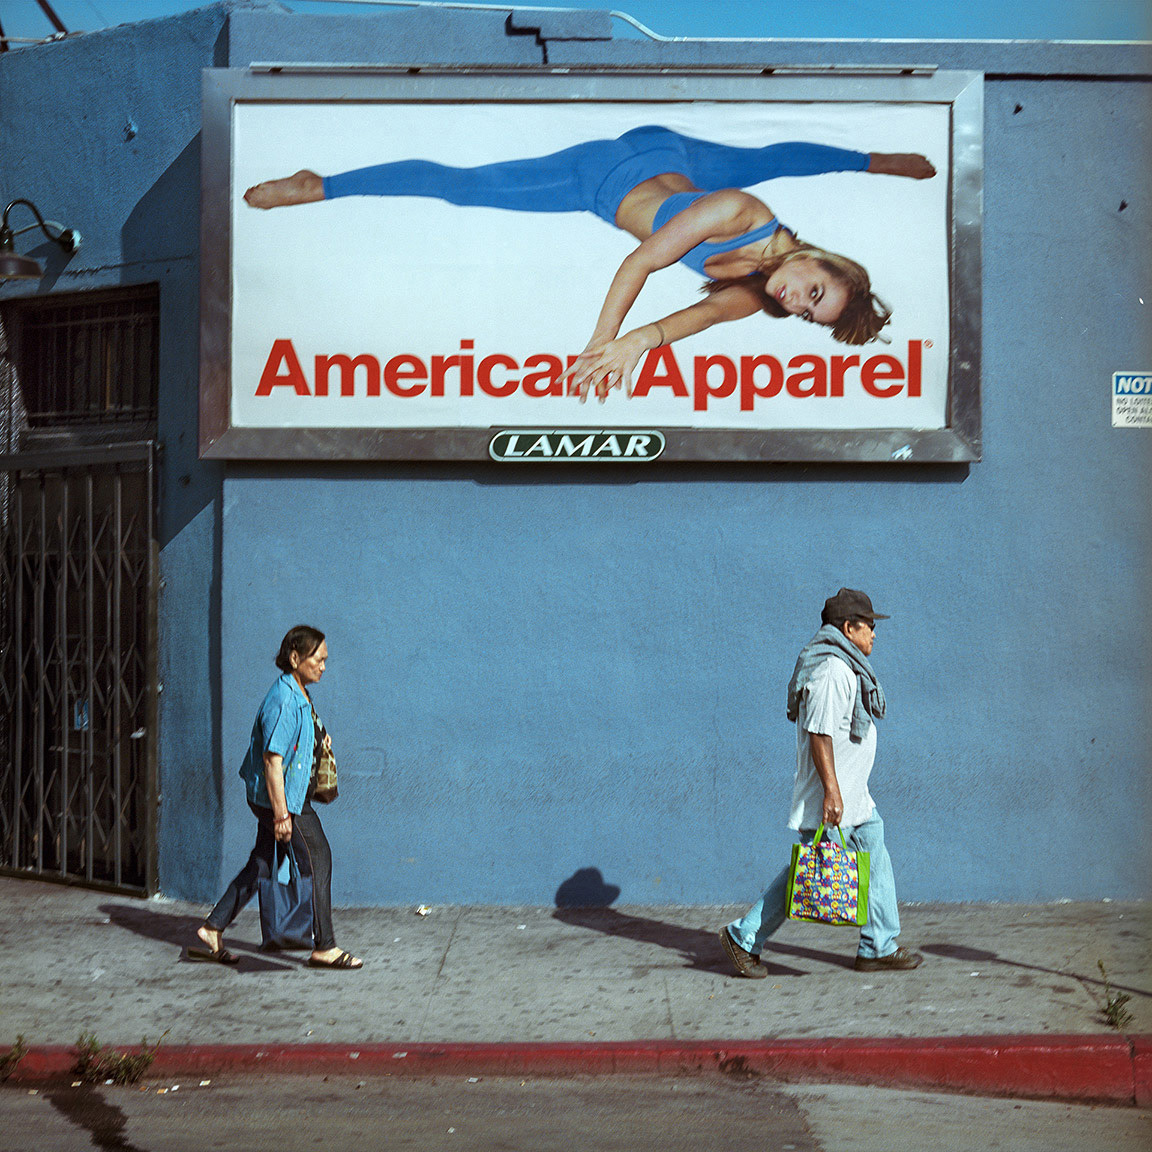 47-TheAmericanApparel-ThomasAlleman-Website-092214